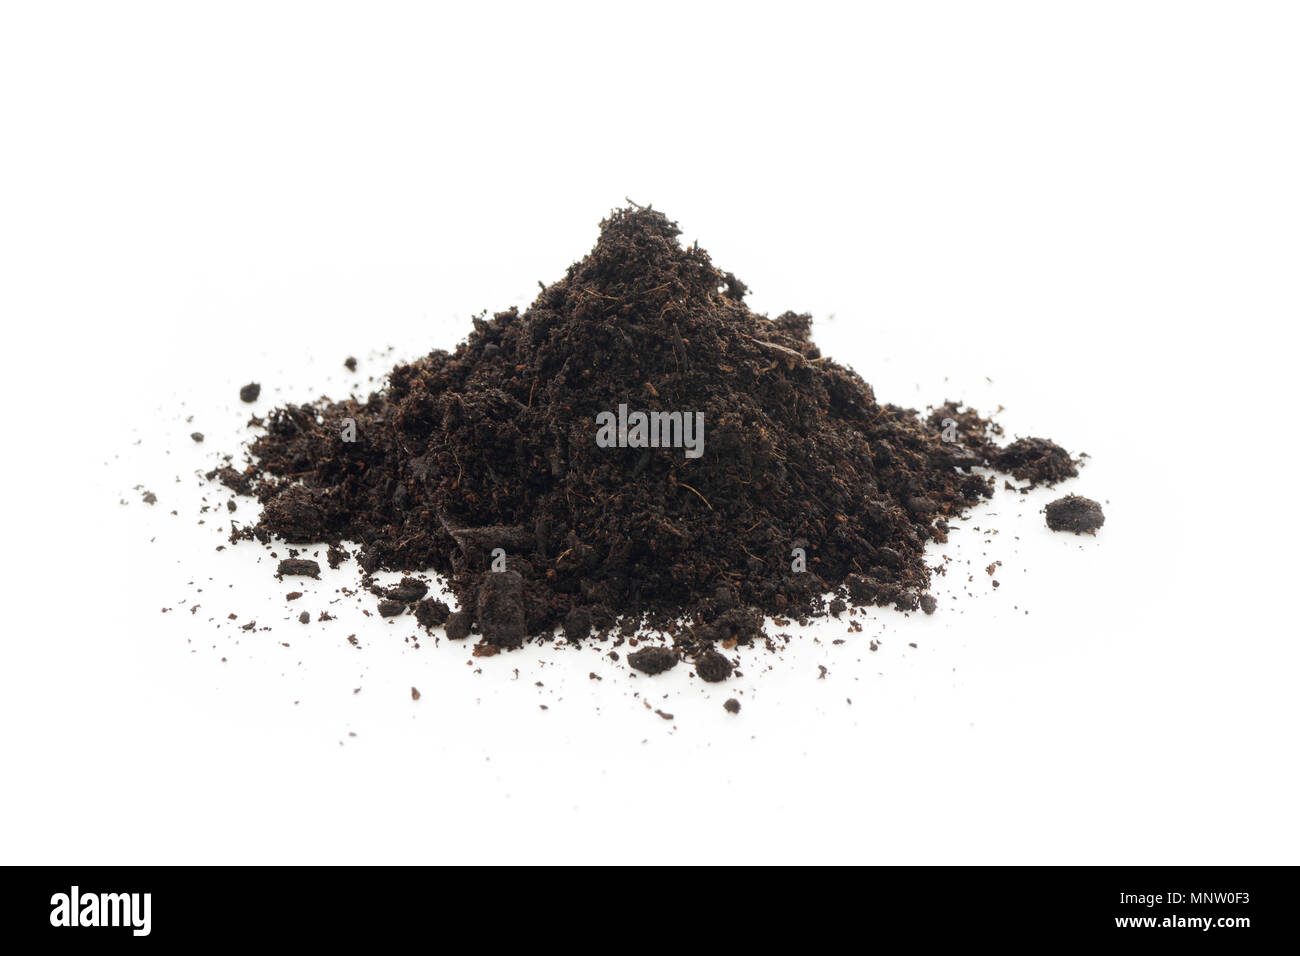 Organic potting soil mix enriched with compost, used in horticulture and gardening. Closeup of an isolated cone pile on white studio background. - Stock Image